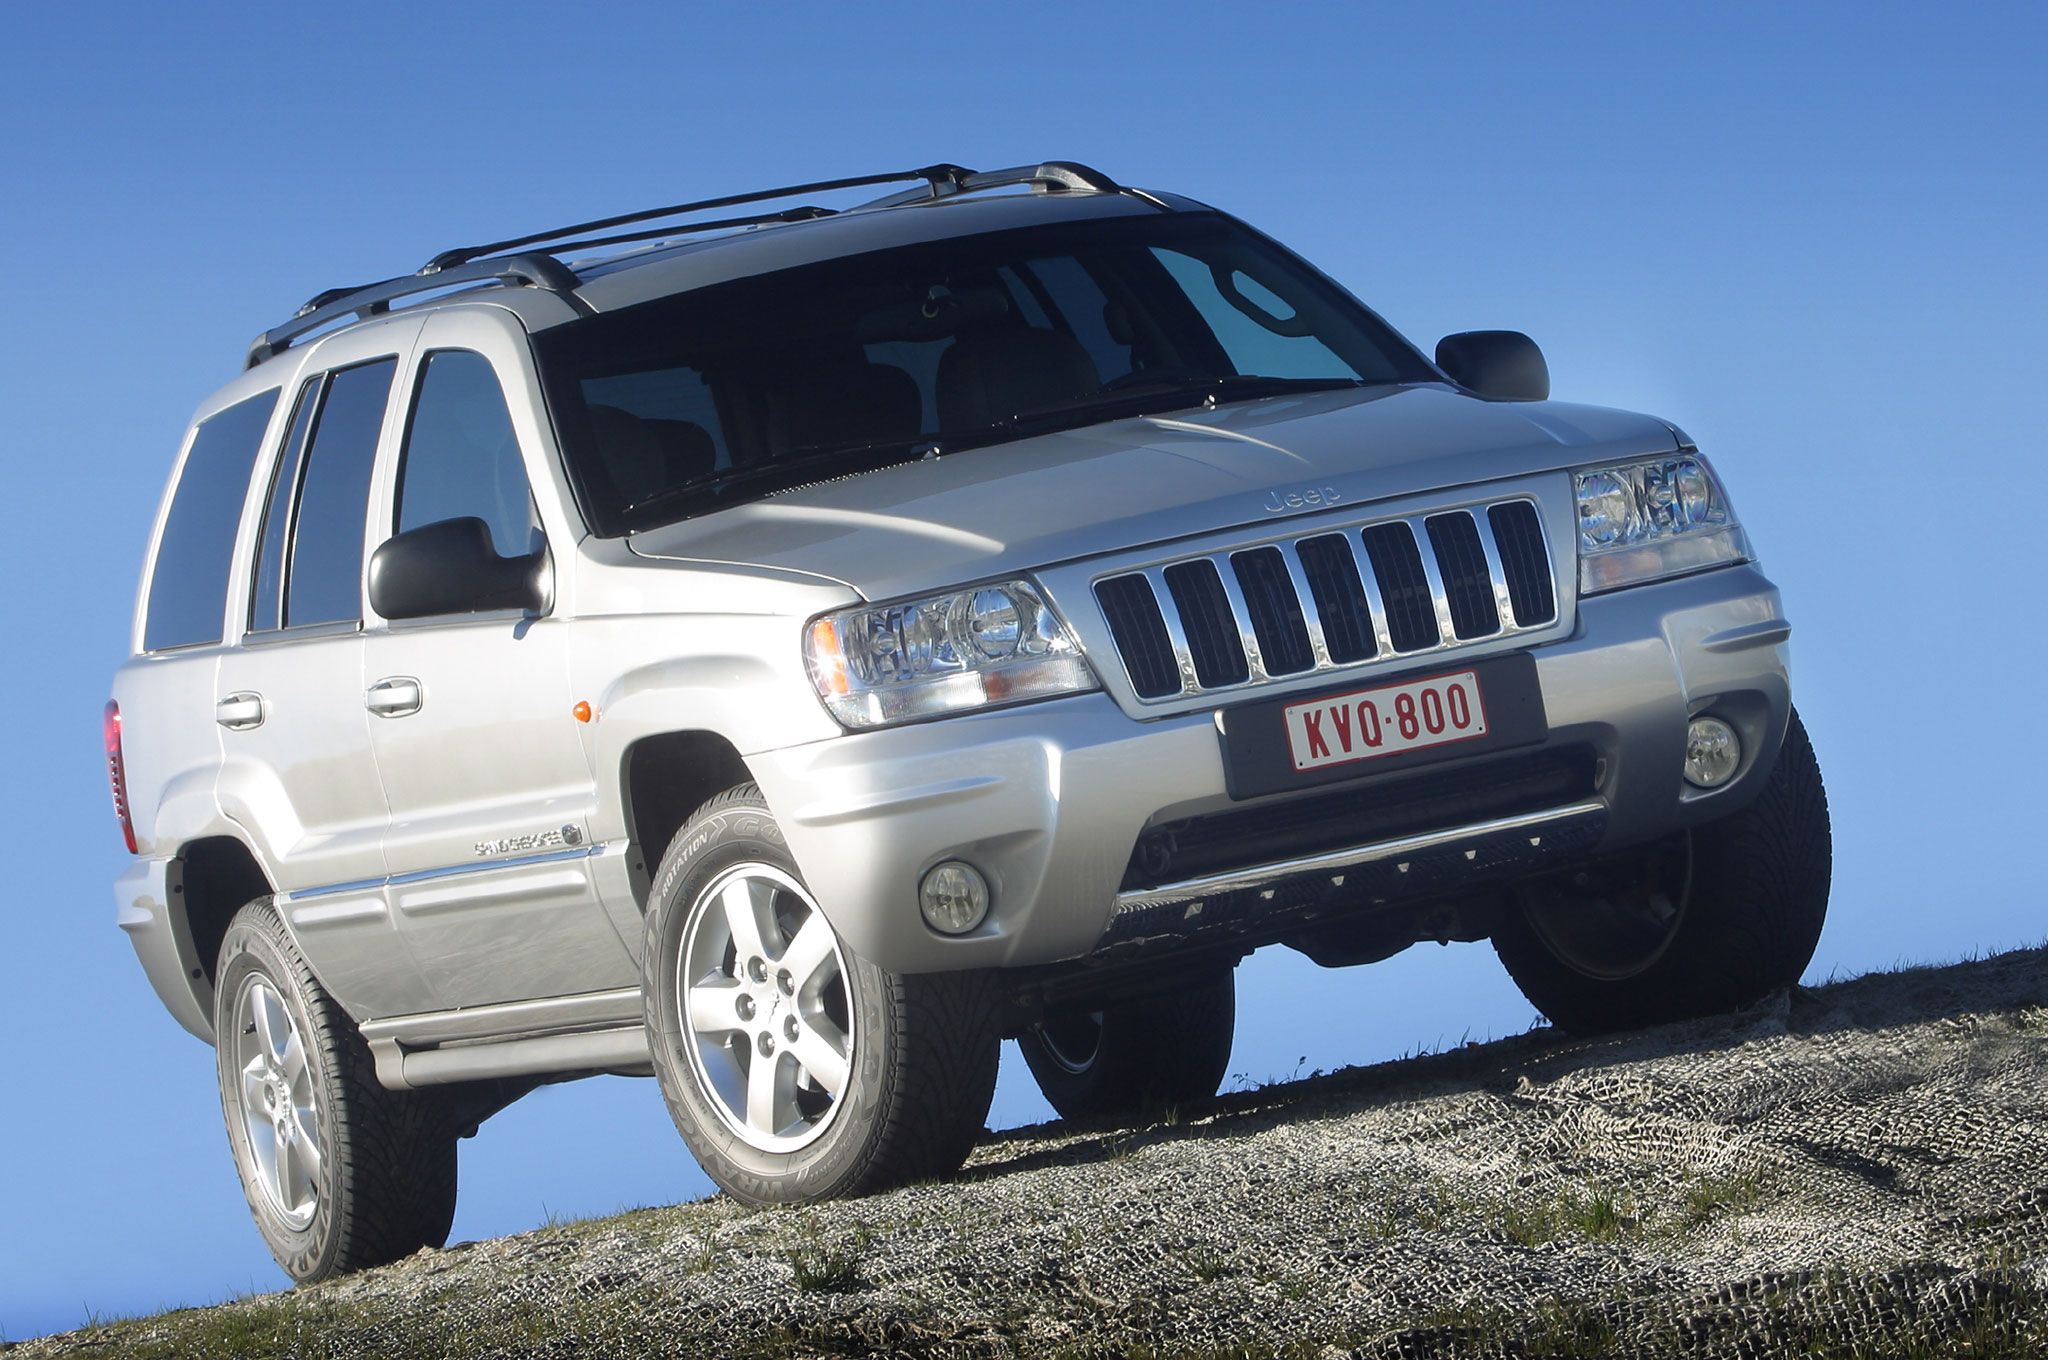 chrysler agrees to recall 2.7 million jeep grand cherokee, liberty